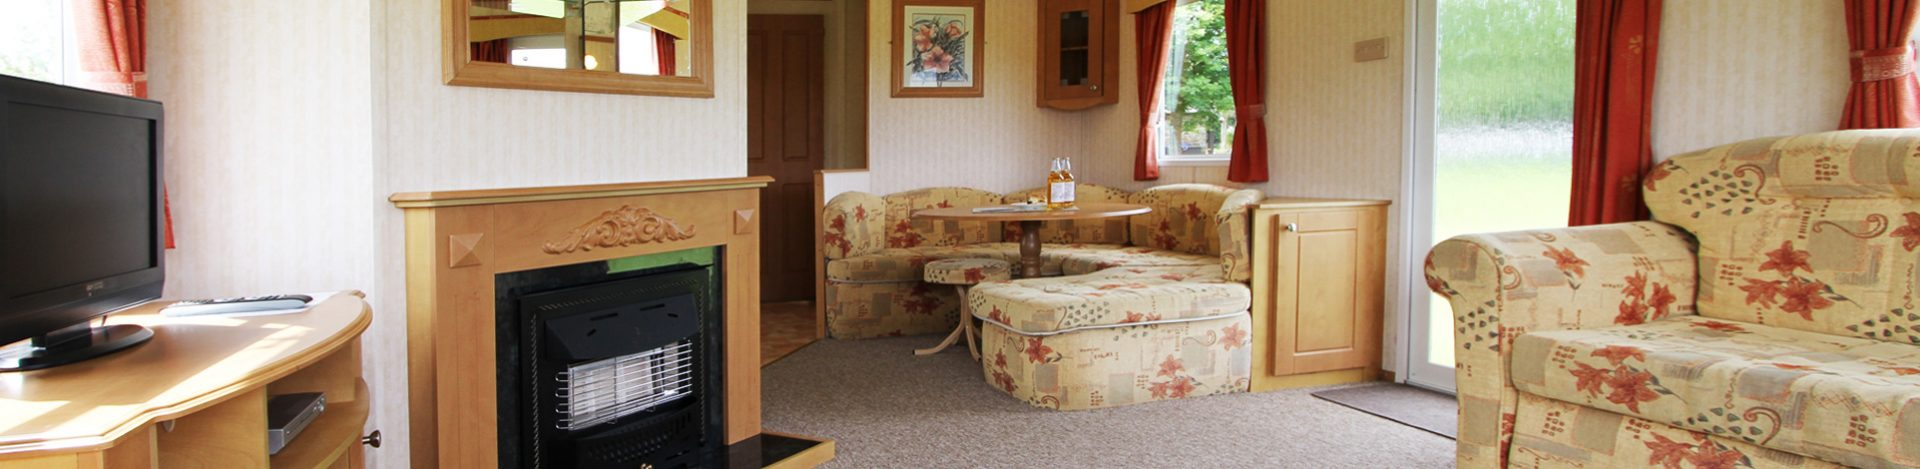 Holiday park lapwing holiday home